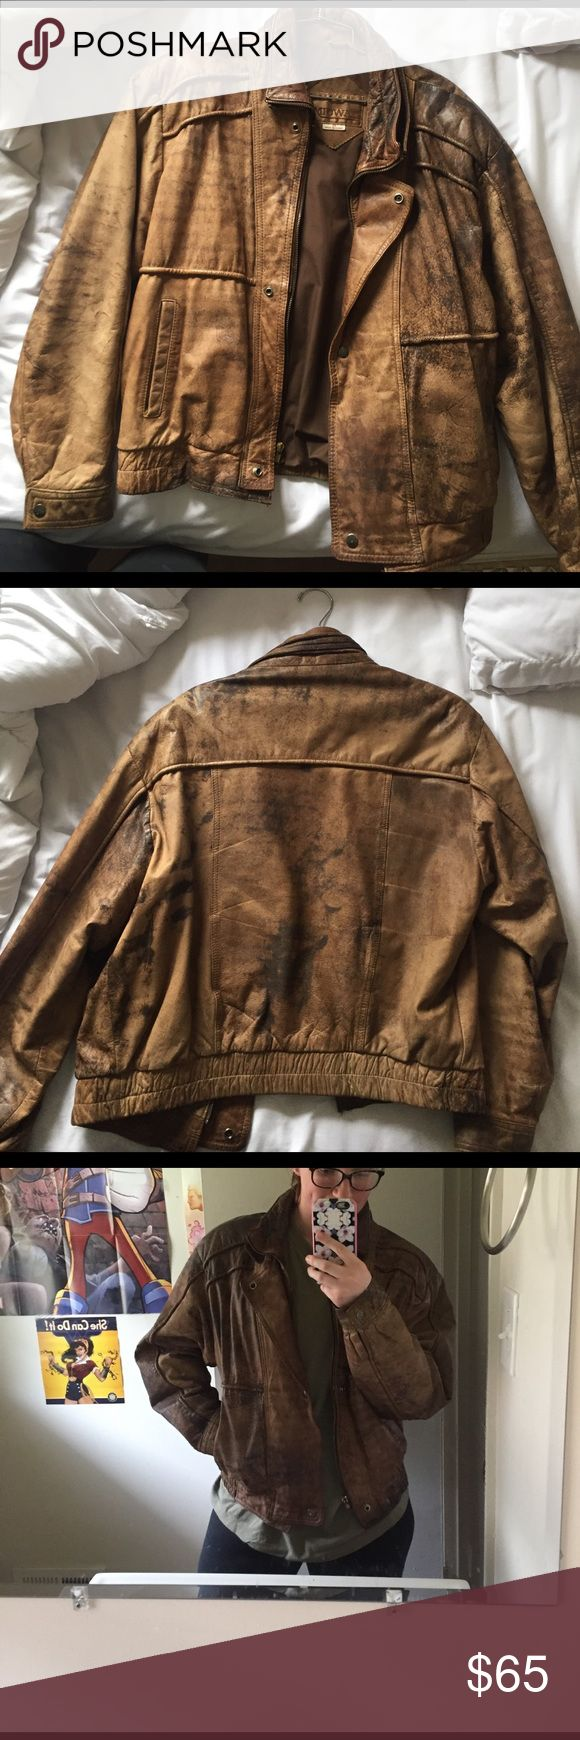 Genuine Distressed Leather Jacket Real leather jacket with inside pocket. Still in perfect condition. Can be worn as Men's 42 or, how I wear it, as a cute oversized female leather jacket Jackets & Coats